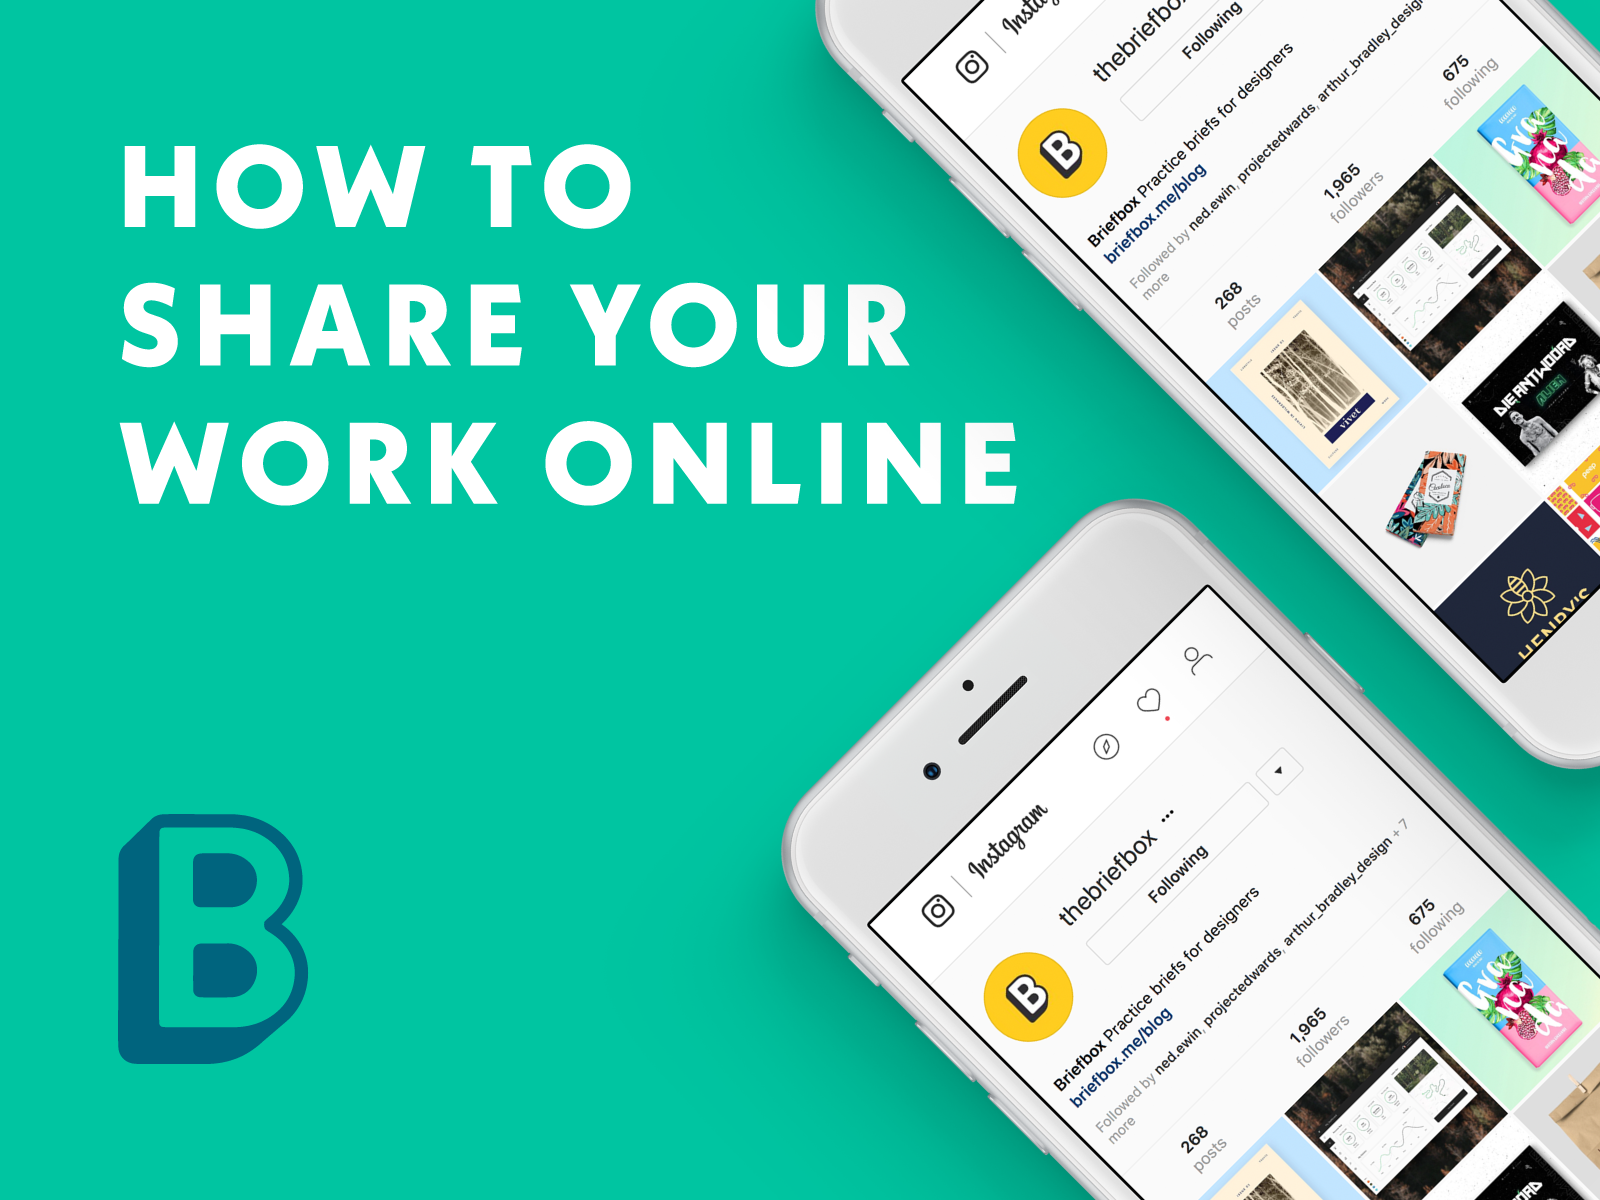 How to share your work online